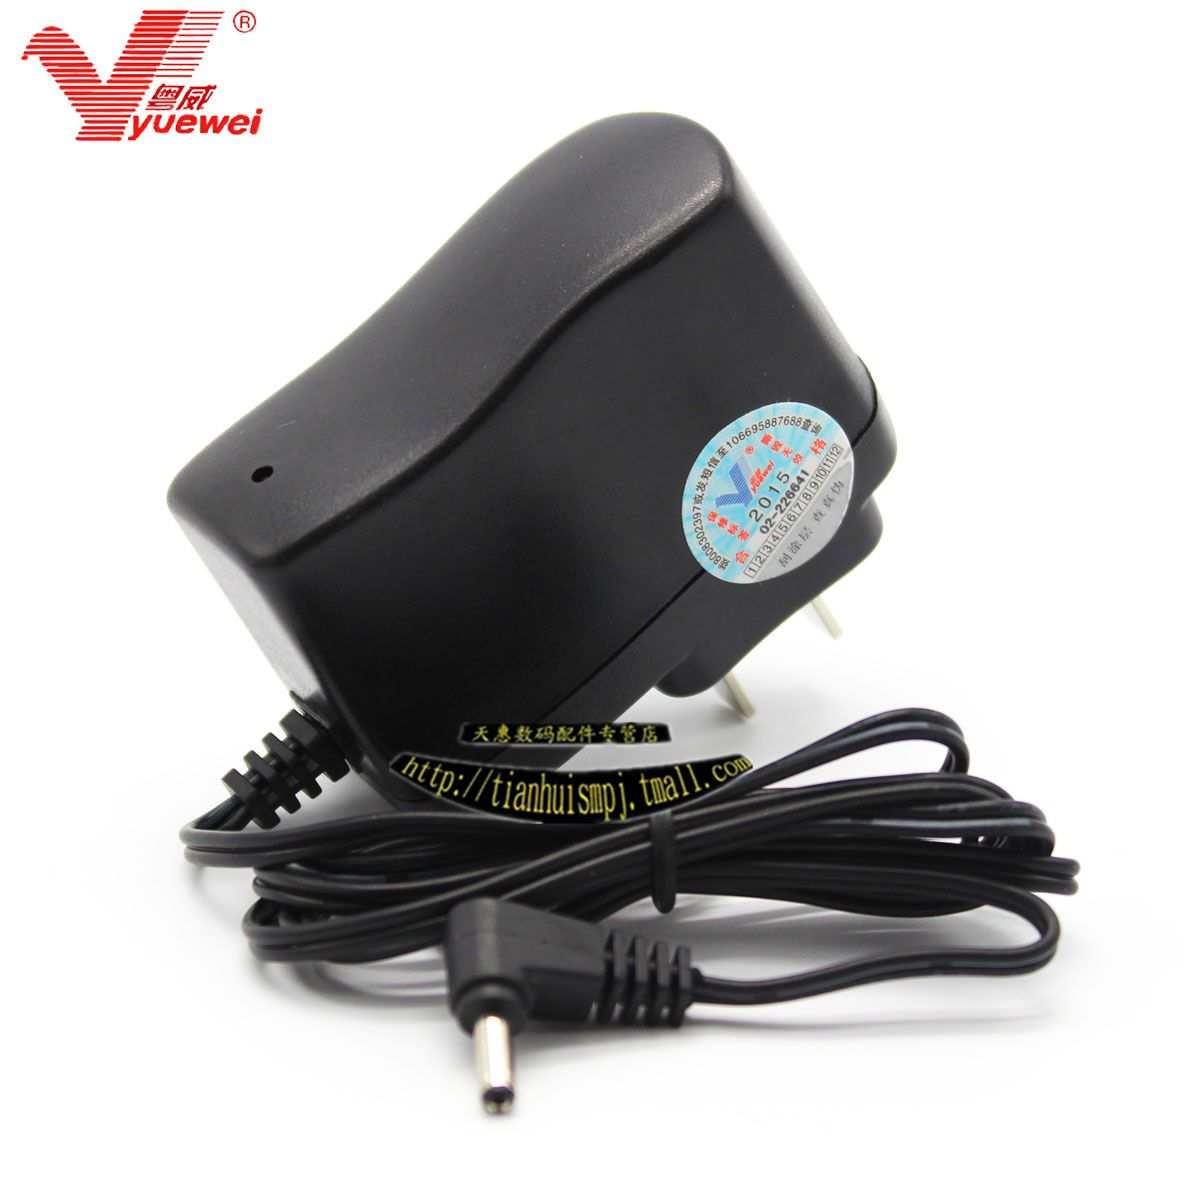 Book3-E Point Reader Learns 9V0.6A Computer Power Adapter 9V600 Yuewei Brand Charger Line